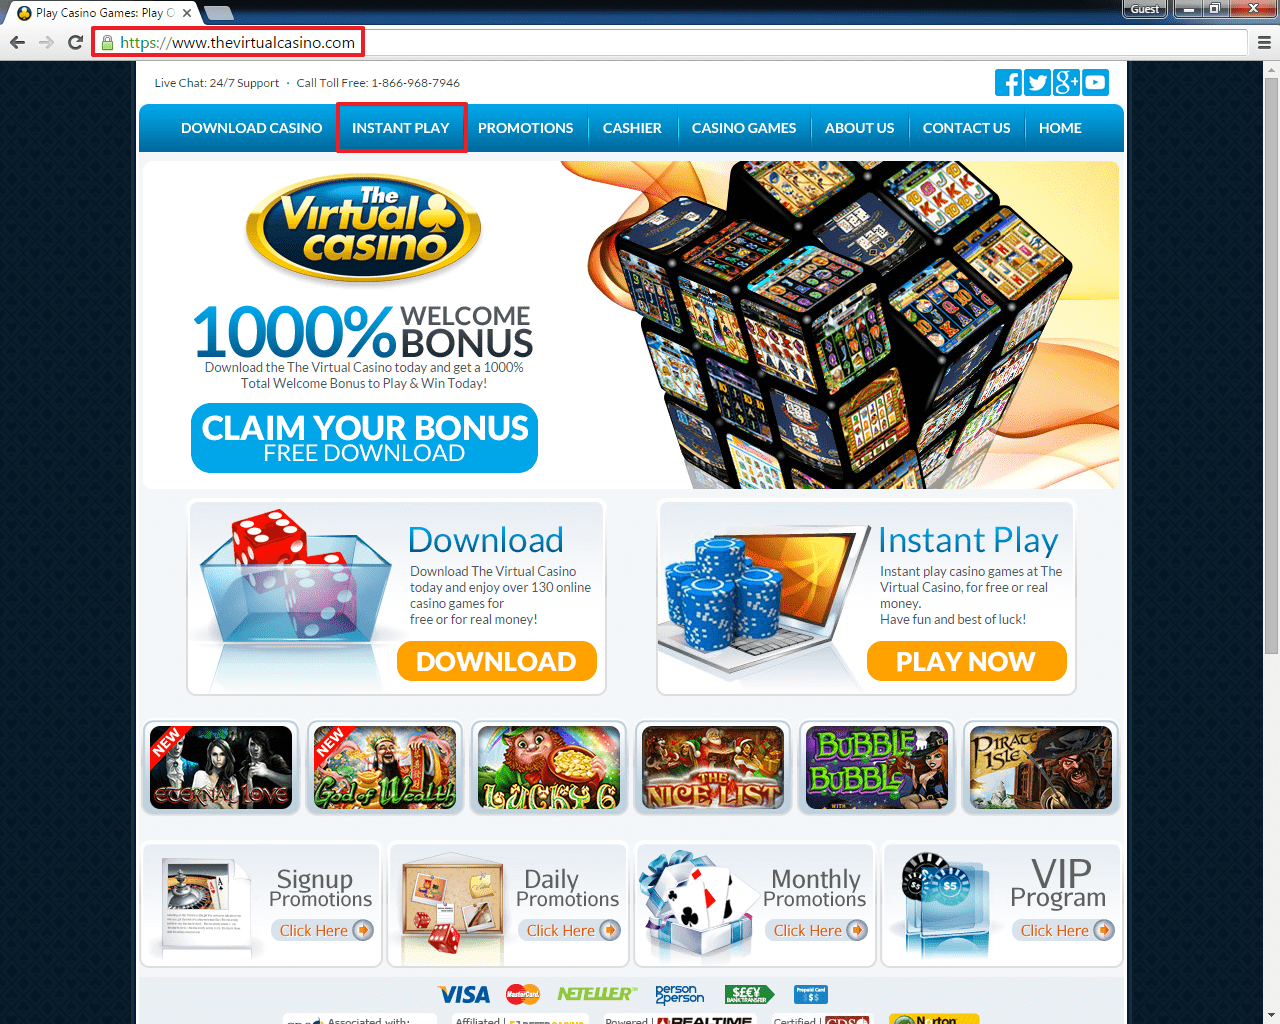 The Virtual Casino Instant Play